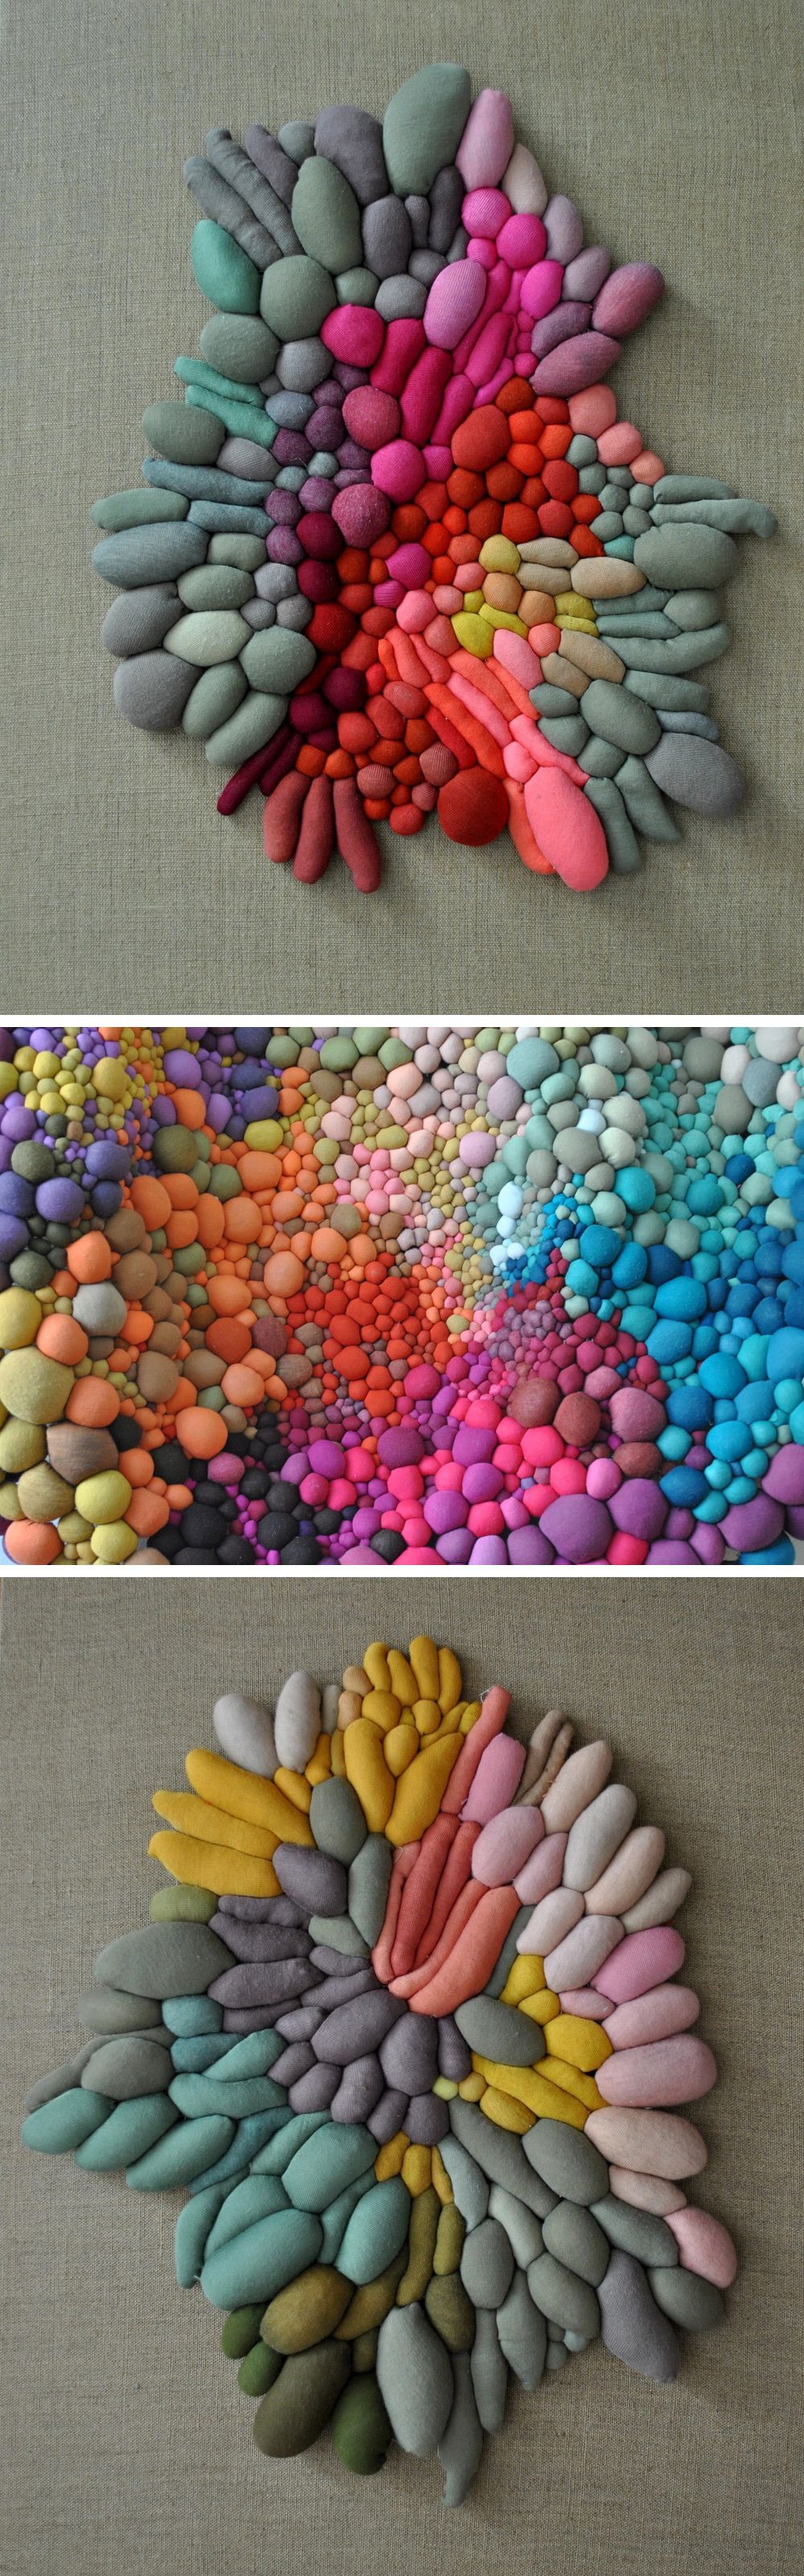 Textile Sculptures Created From Dozens of Multicolored Orbs by Serena Garcia Dalla Venezia